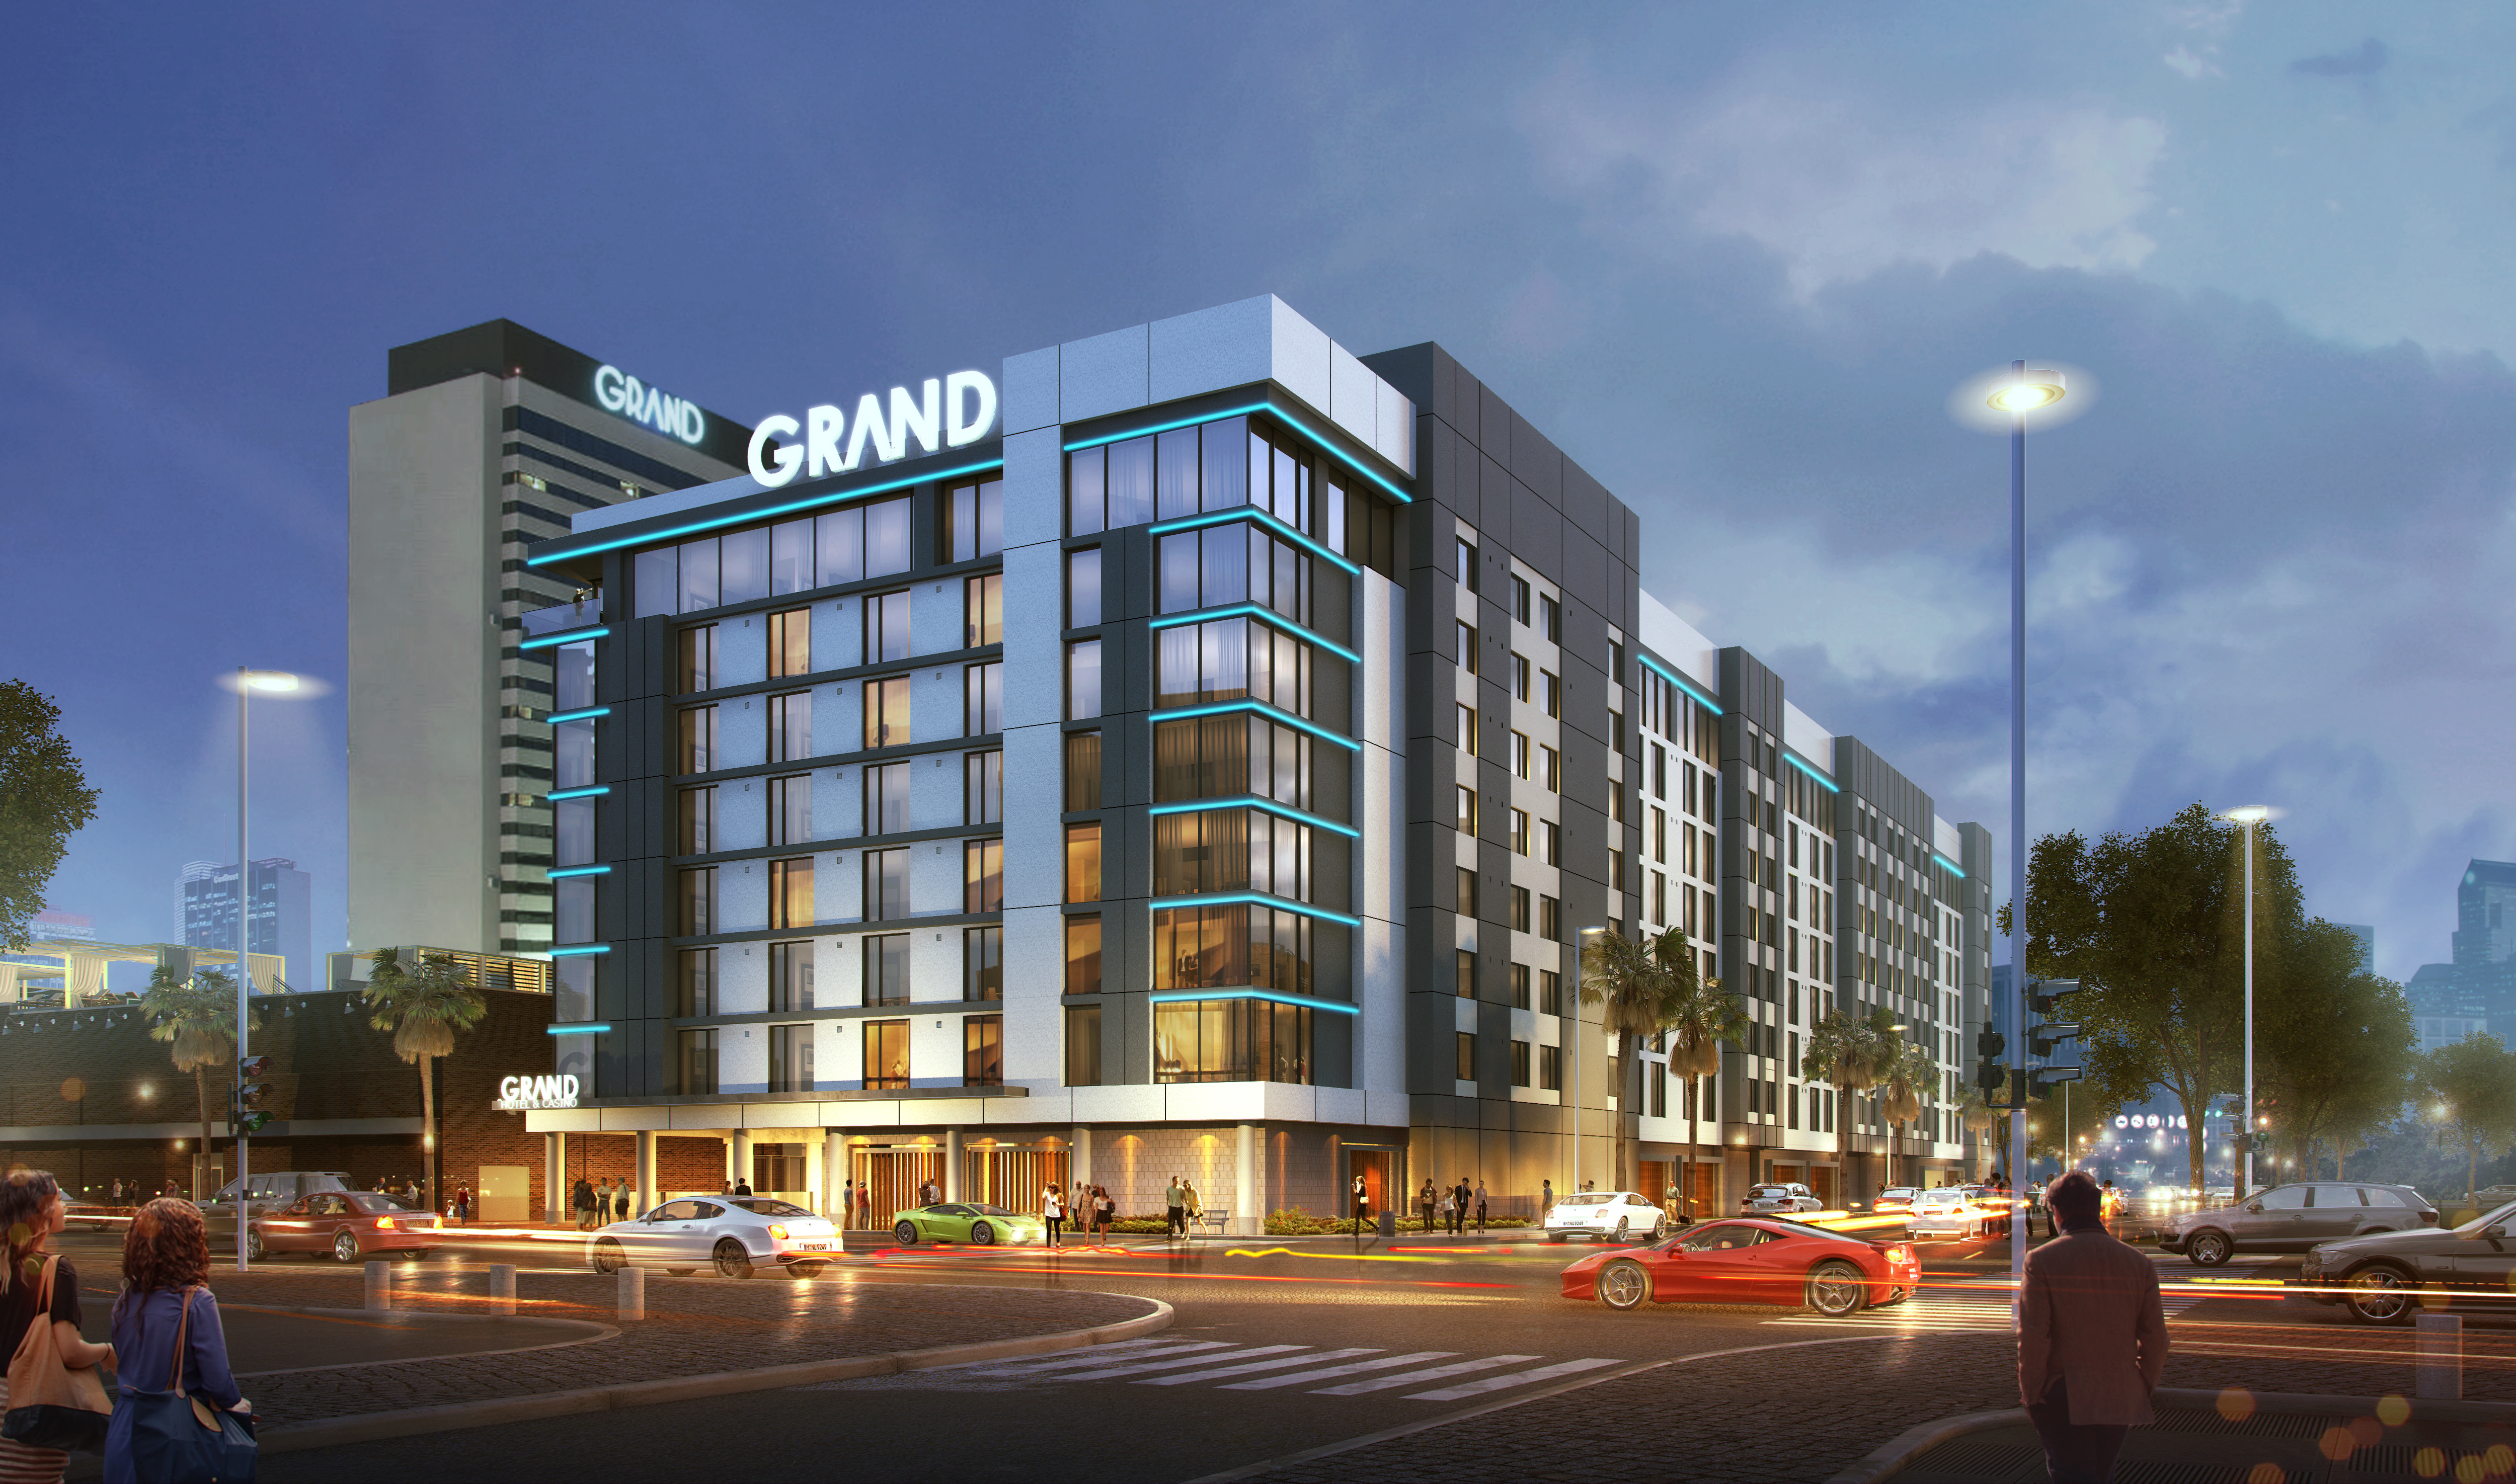 Downtown Grand Hotel & Casino Standardizes on Aruba to Deliver IoT